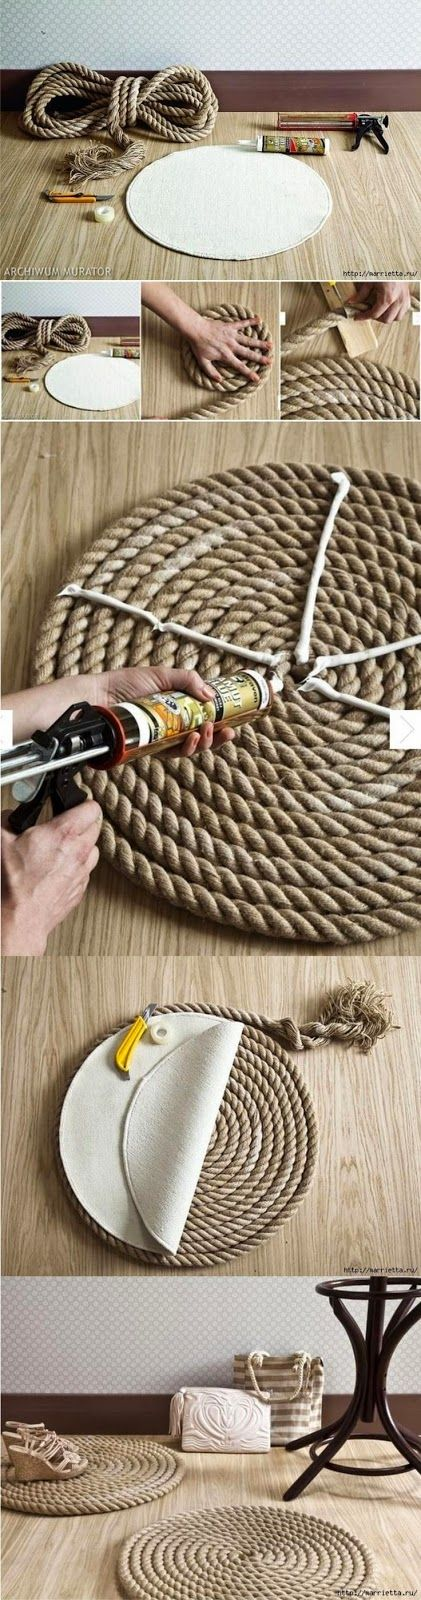 DIY Rope Rug. Want to make the Vertical hanging plants